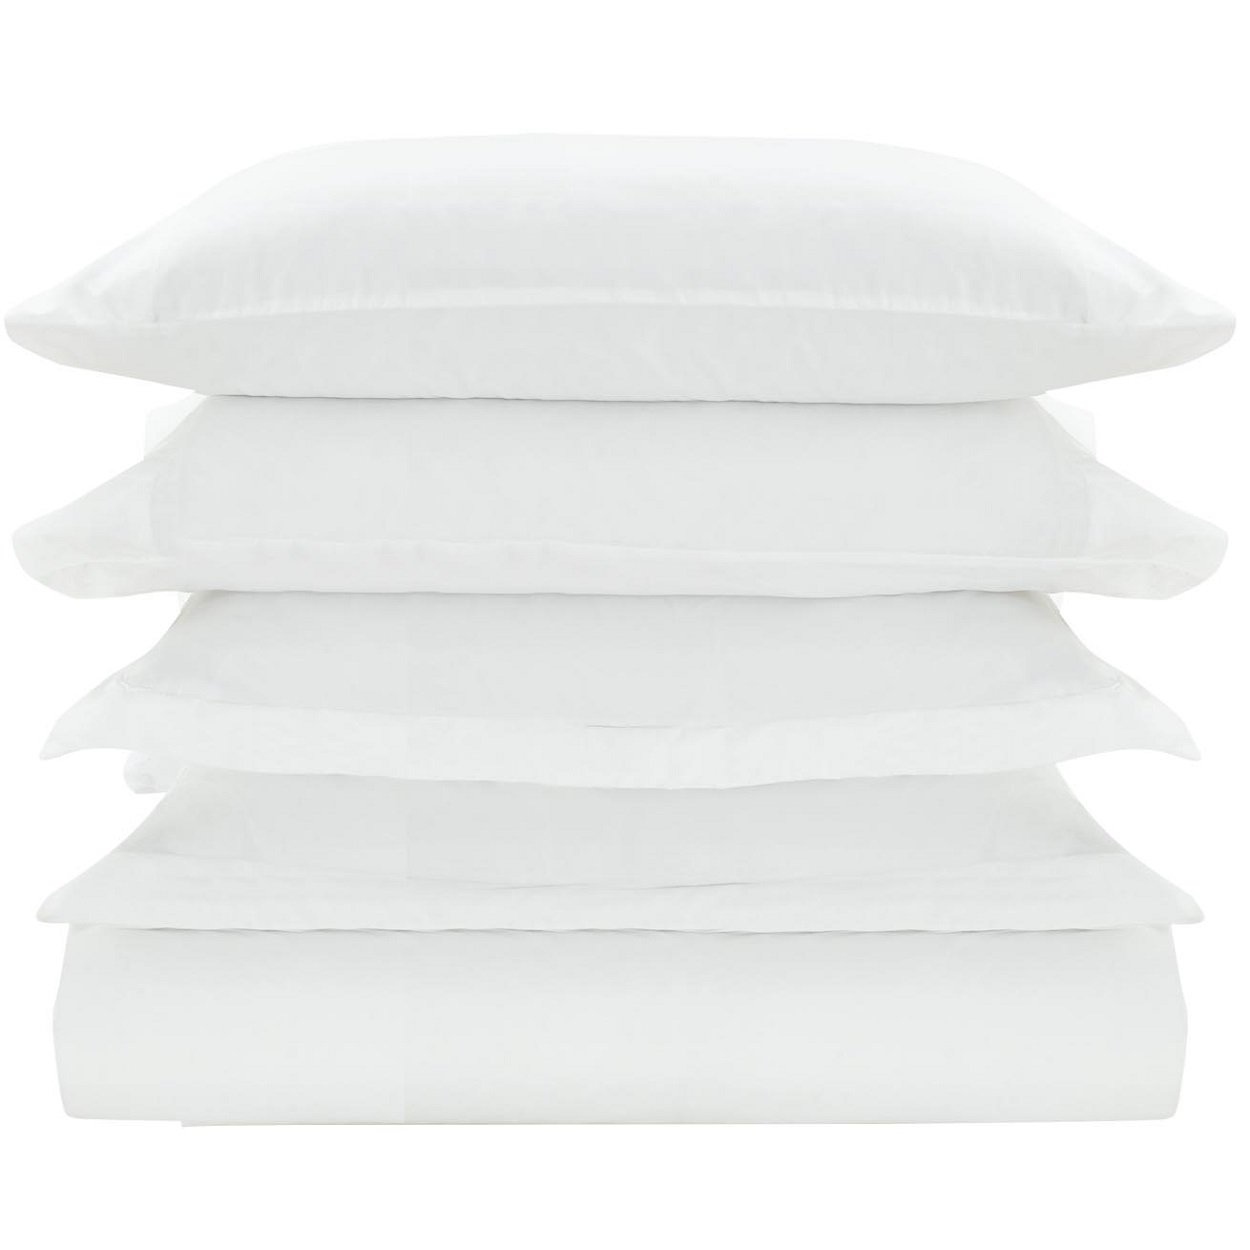 Mellanni Duvet Cover Set White - Double Brushed Microfiber 1800 Bedding Collection with Extra Pillowcase - Wrinkle, Fade, Stain Resistant - Hypoallergenic - 3 Piece (Twin/Twin XL, White)